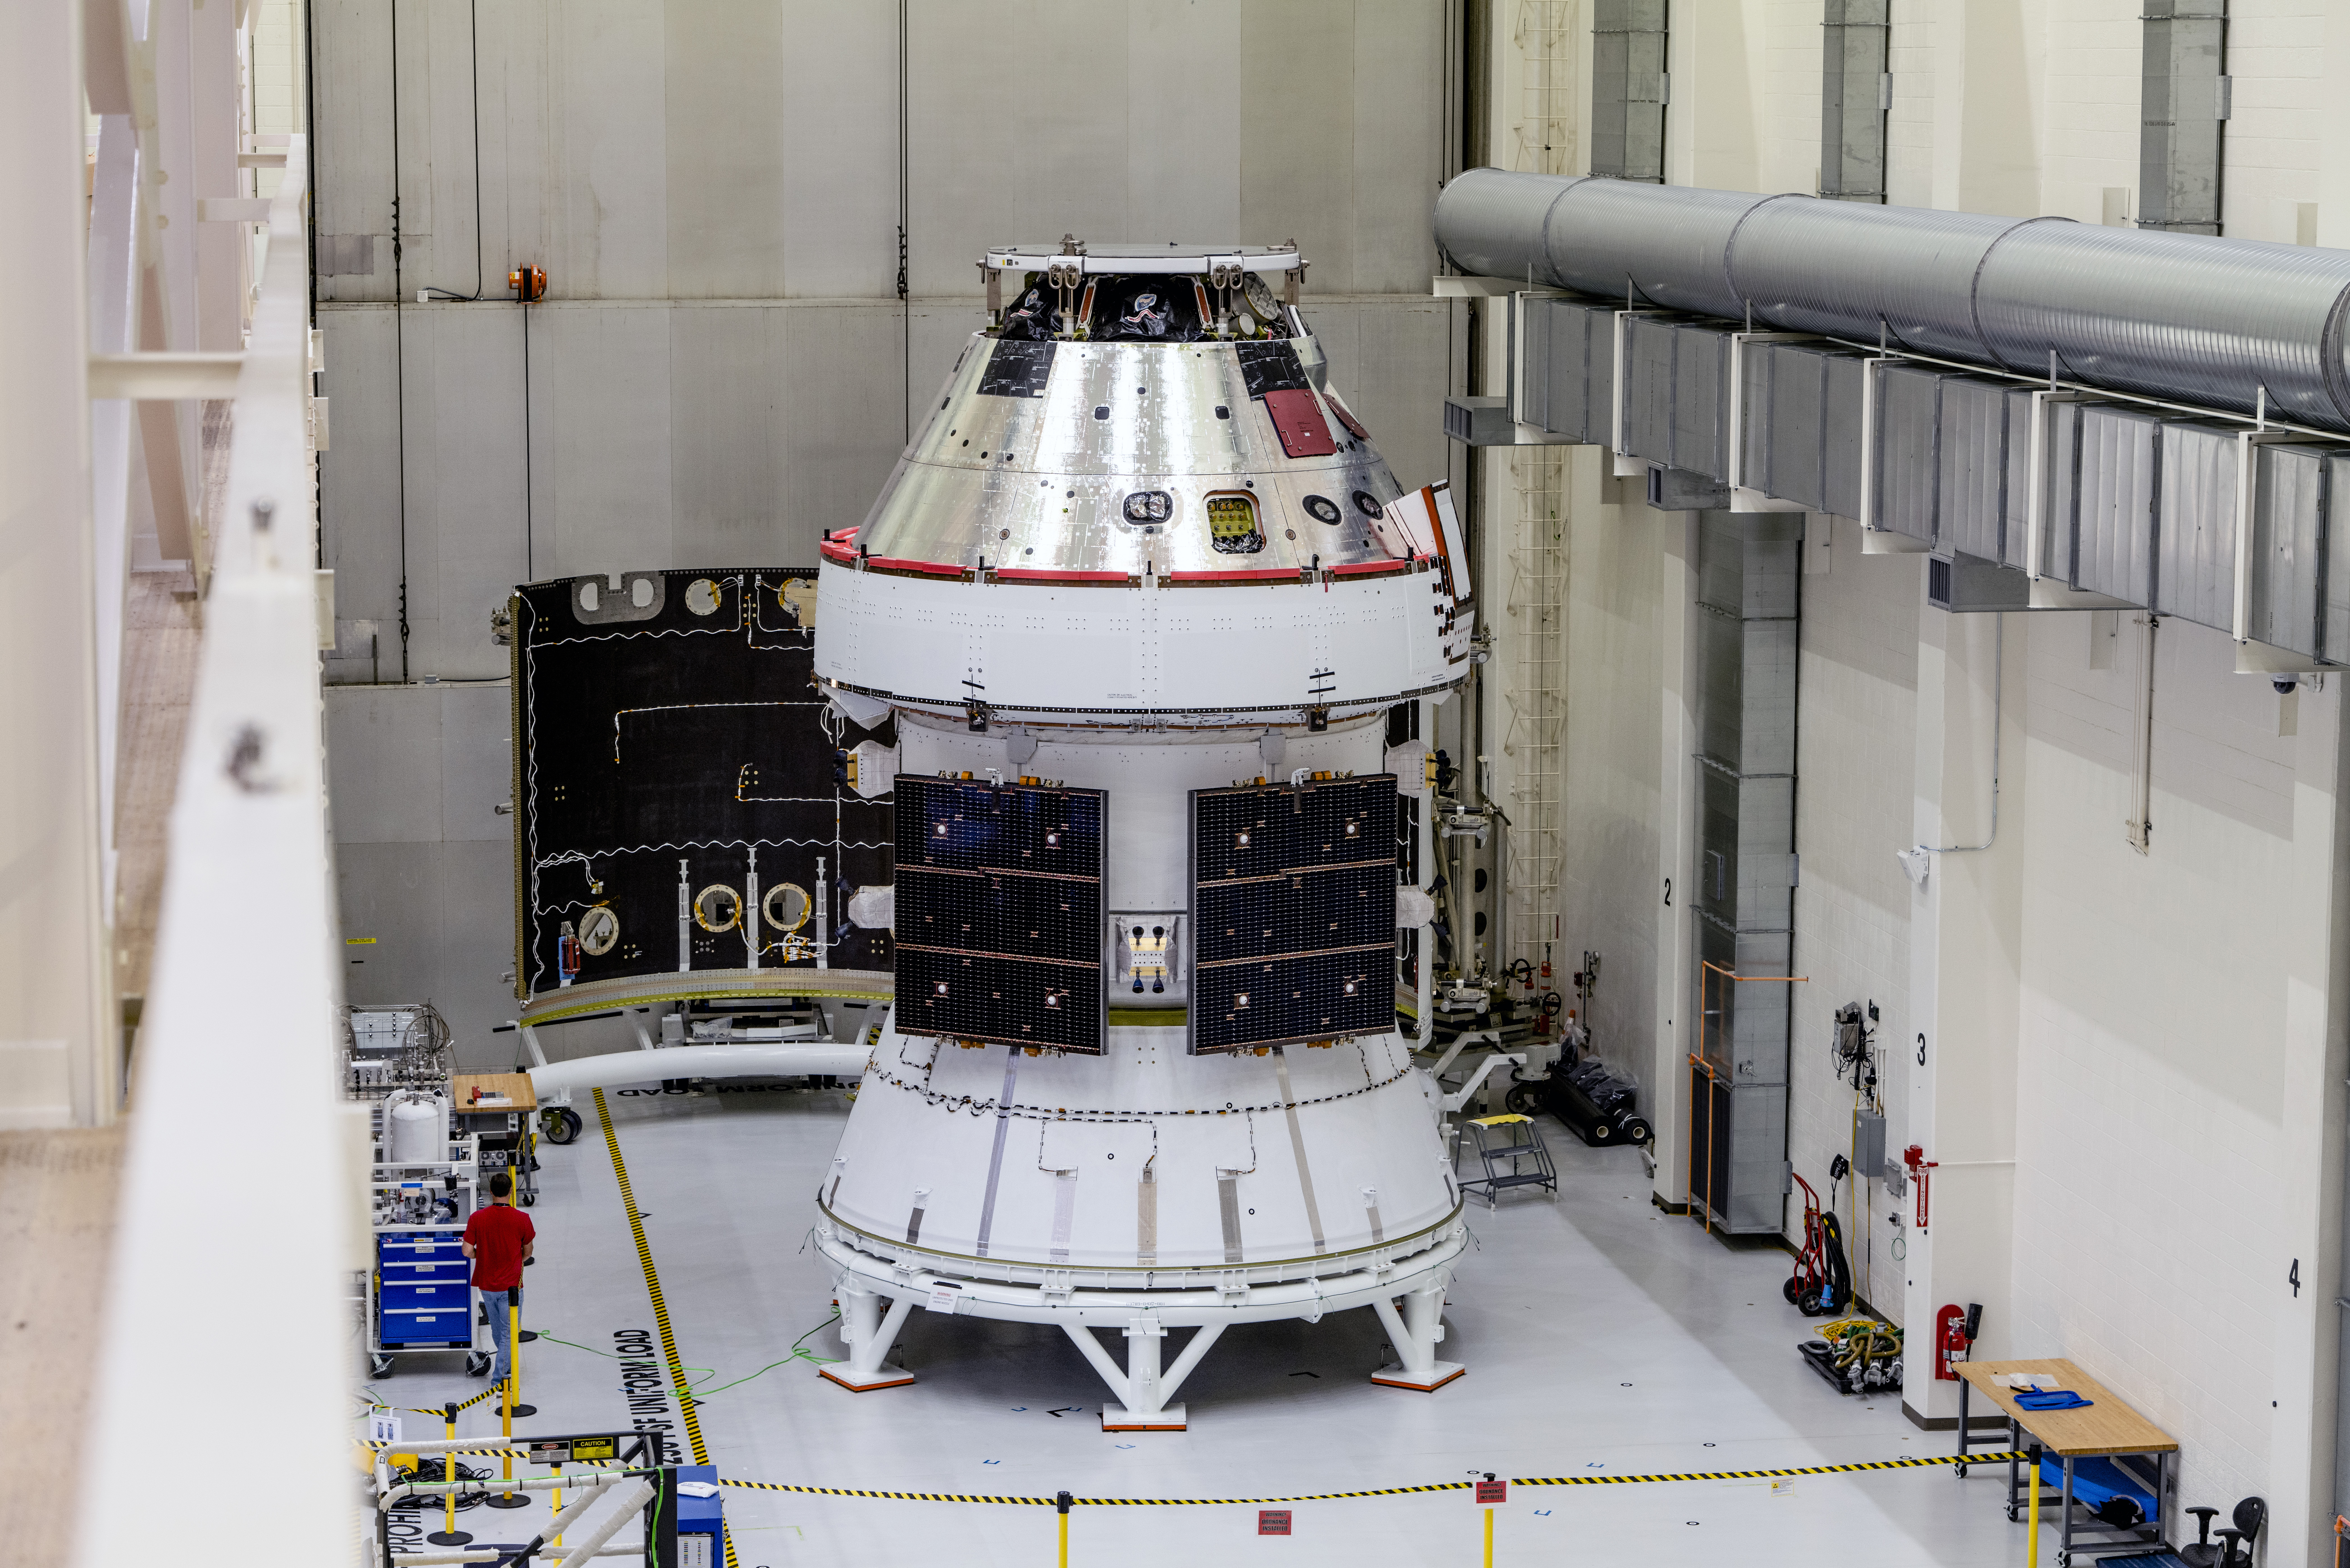 NASA's Orion spacecraft at Kennedy Space Center